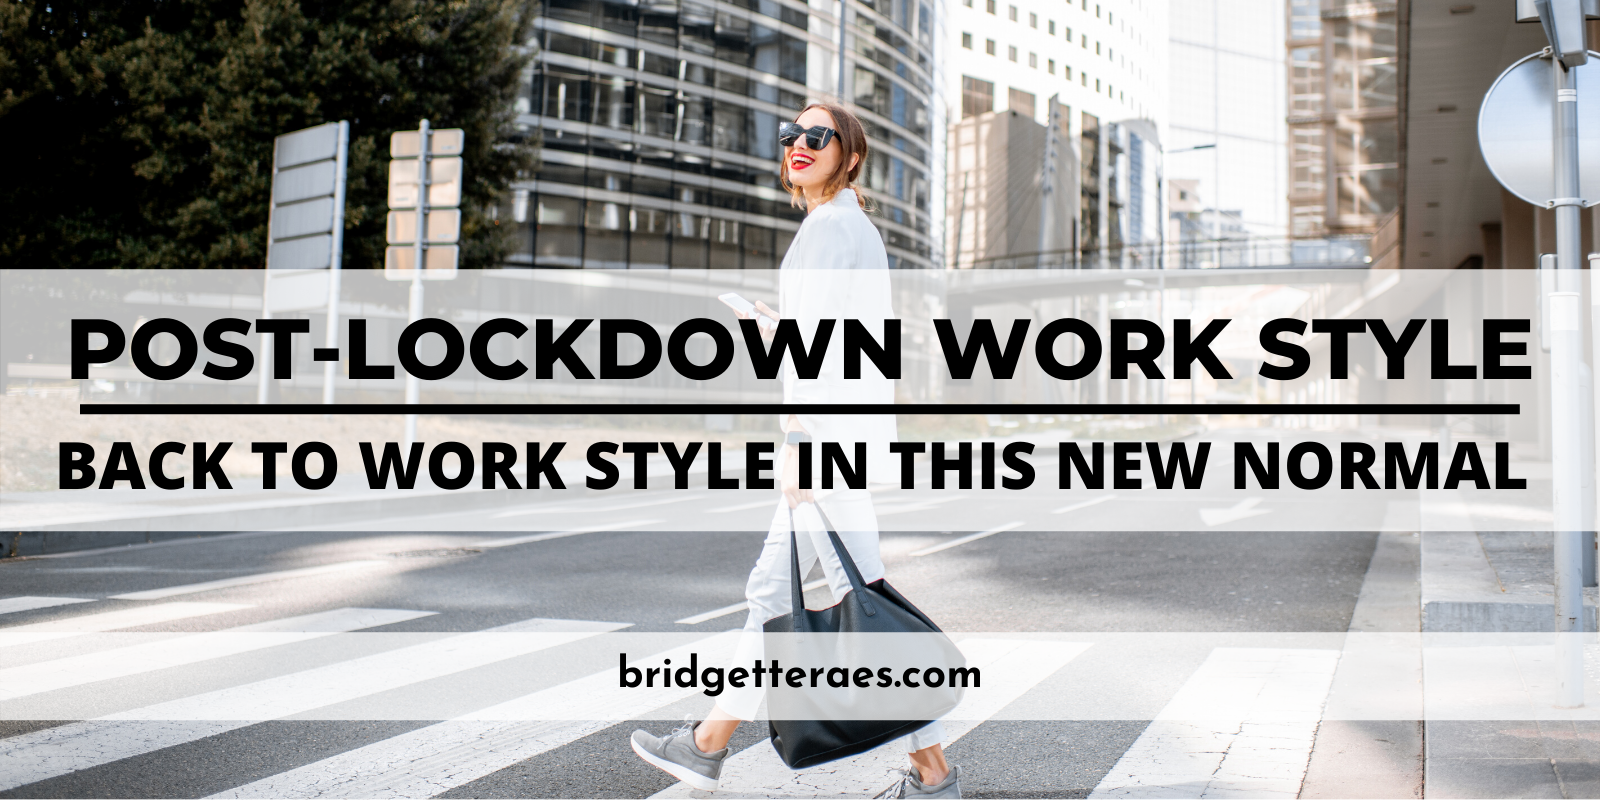 Post-Lockdown Work Style: Back to Work Style in This New Normal